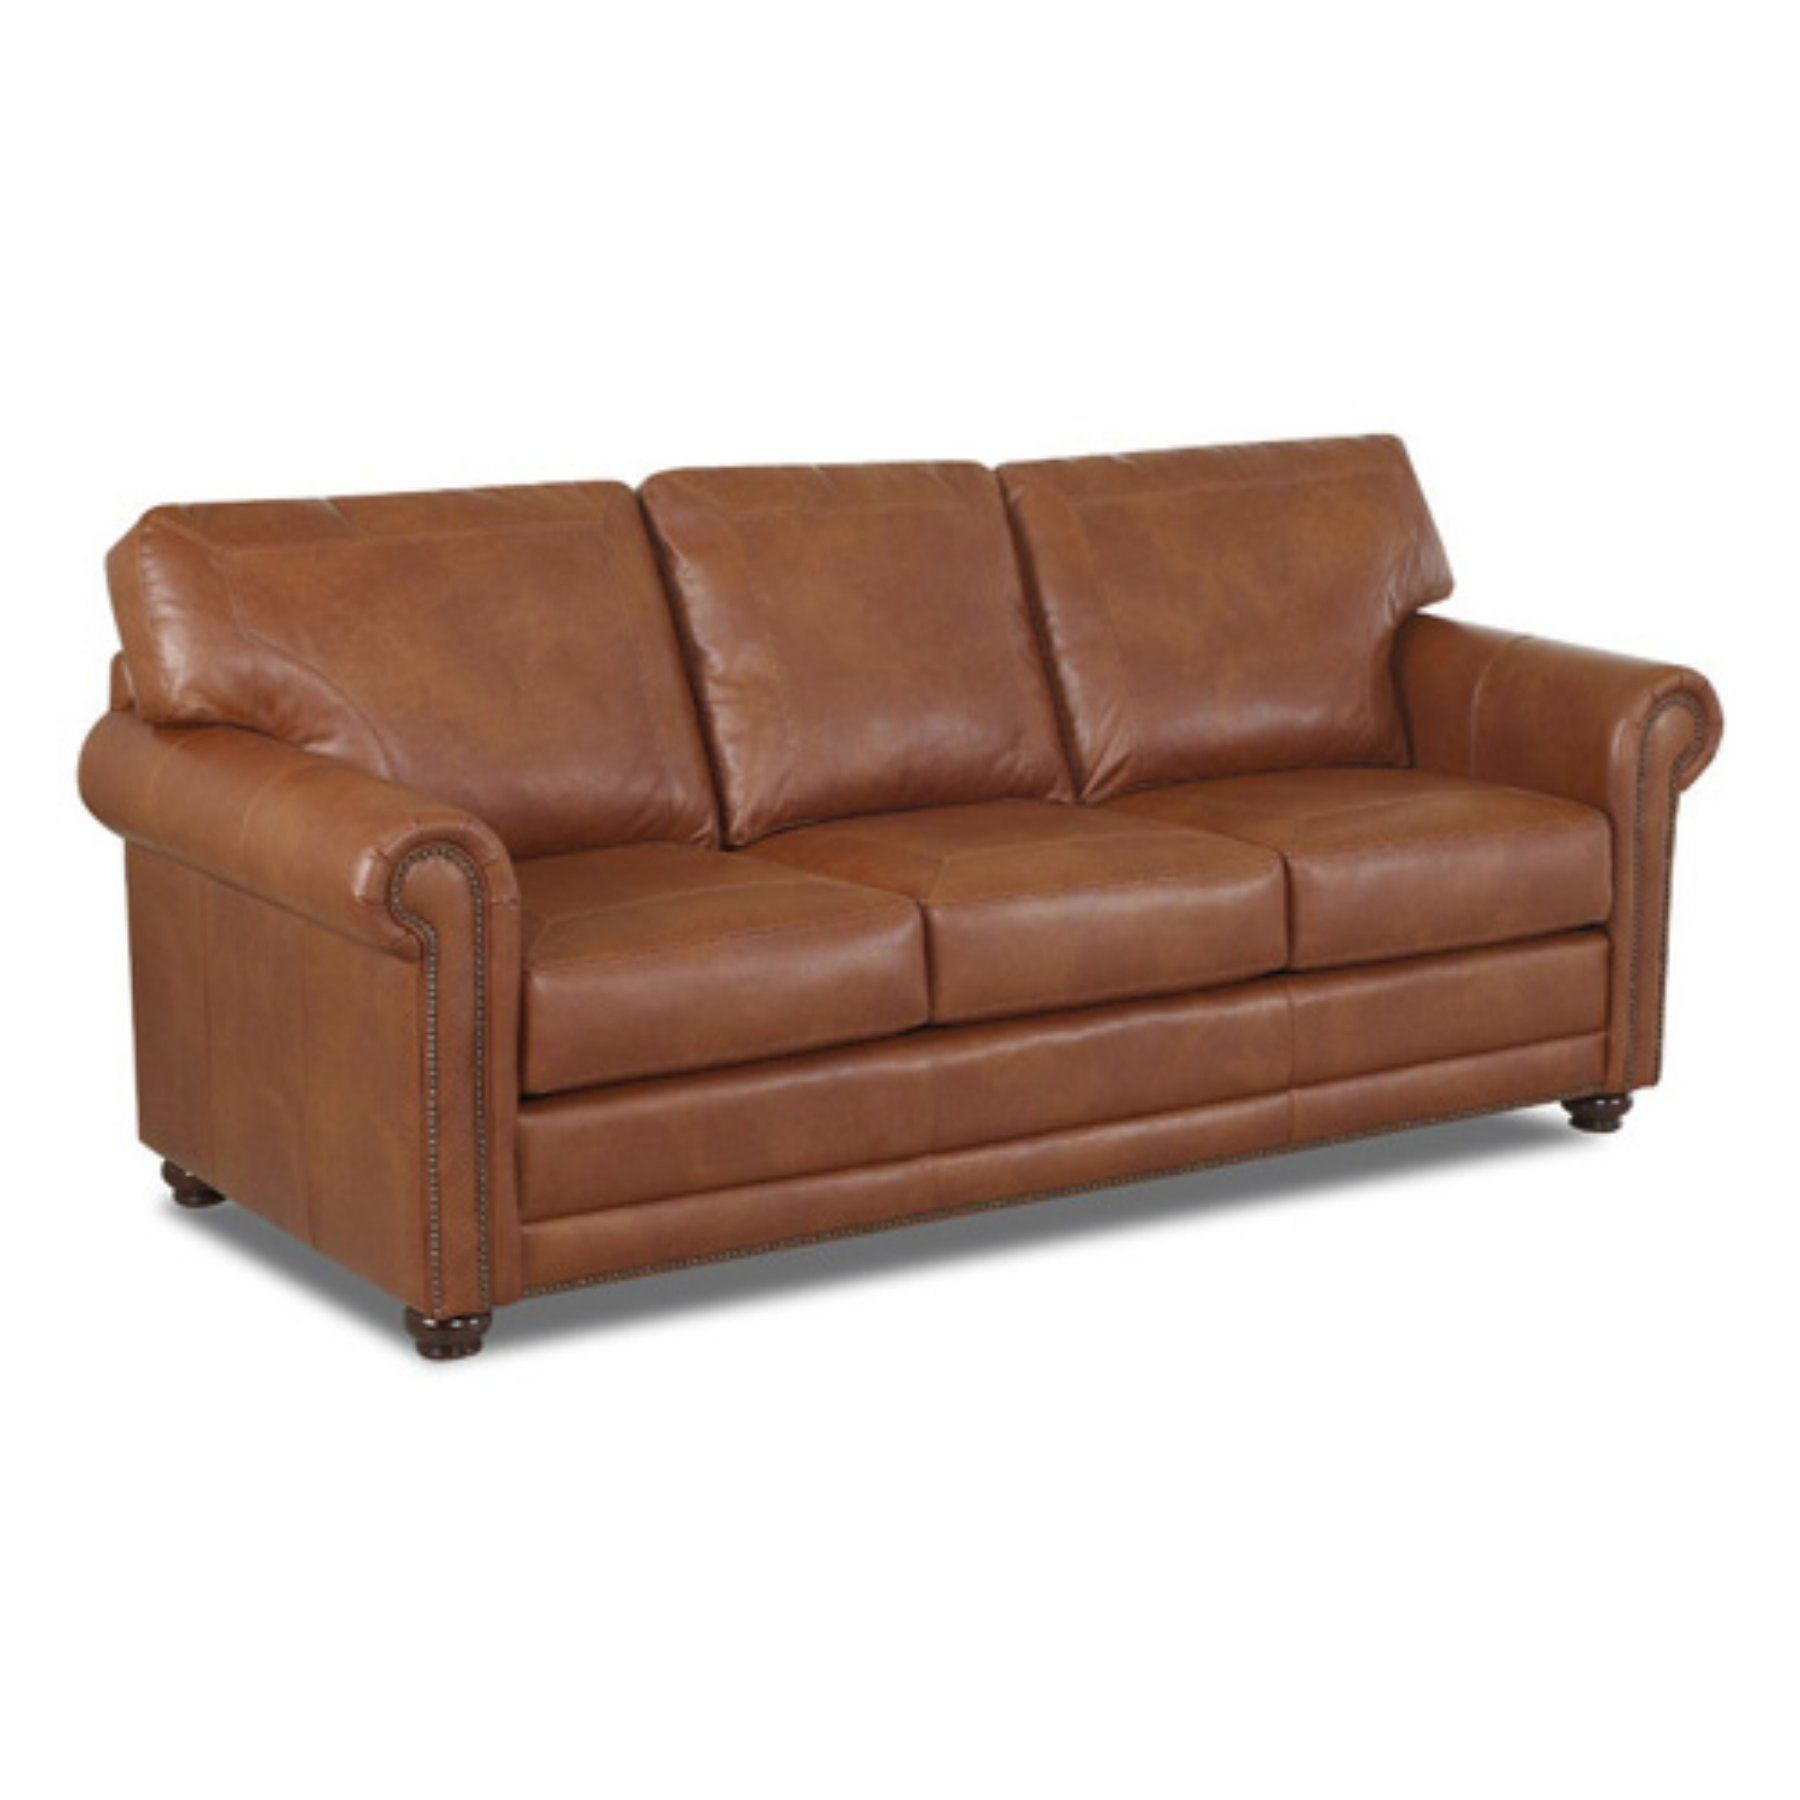 Peachy Klaussner Sherman Leather Sofa In 2019 Products Leather Gmtry Best Dining Table And Chair Ideas Images Gmtryco